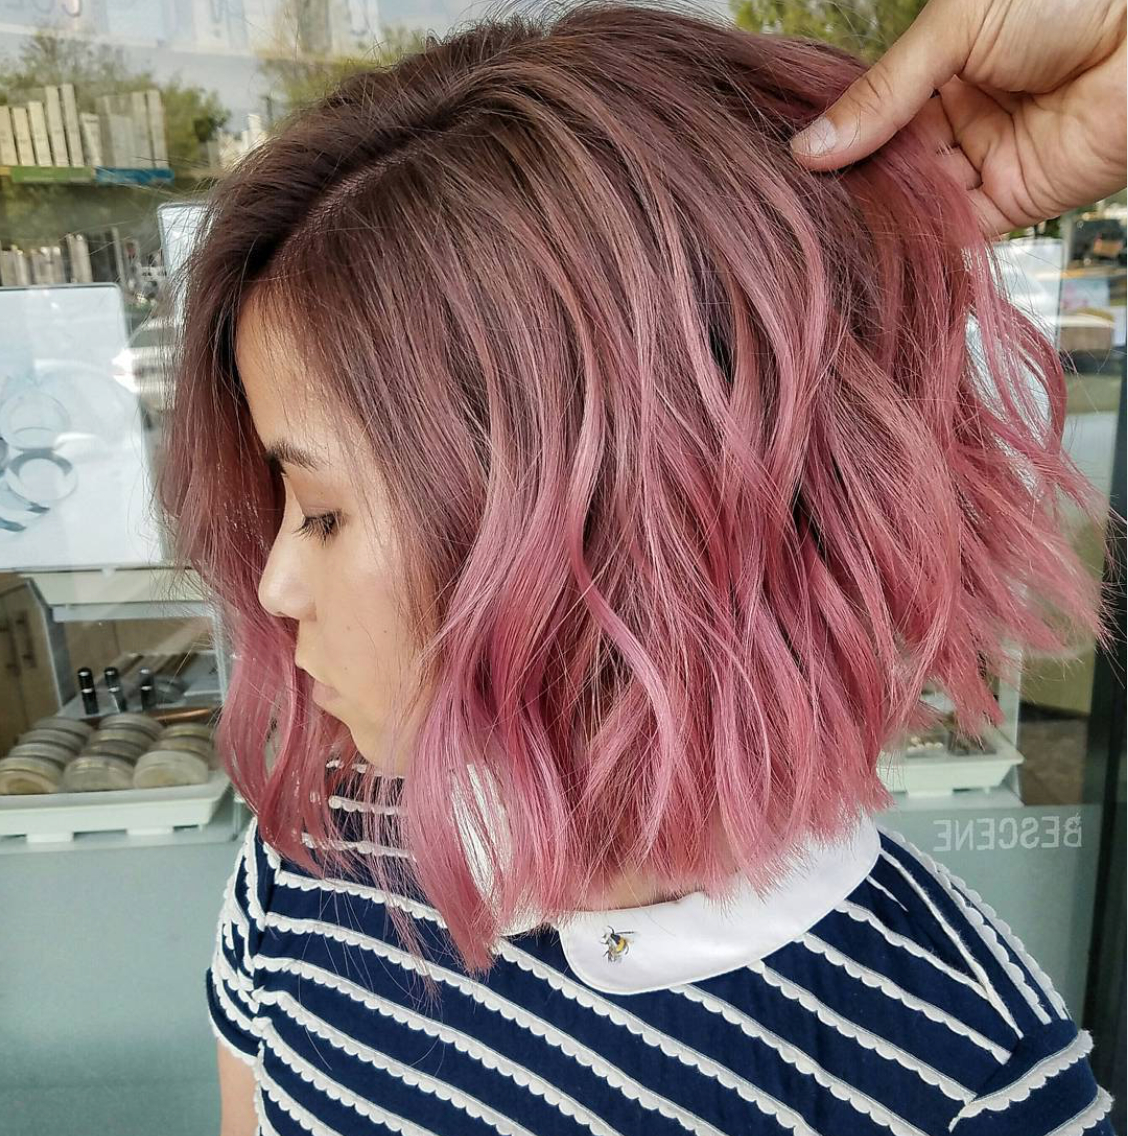 10 Short Ombré Hairstyles We Love (Gallery 12 of 20)